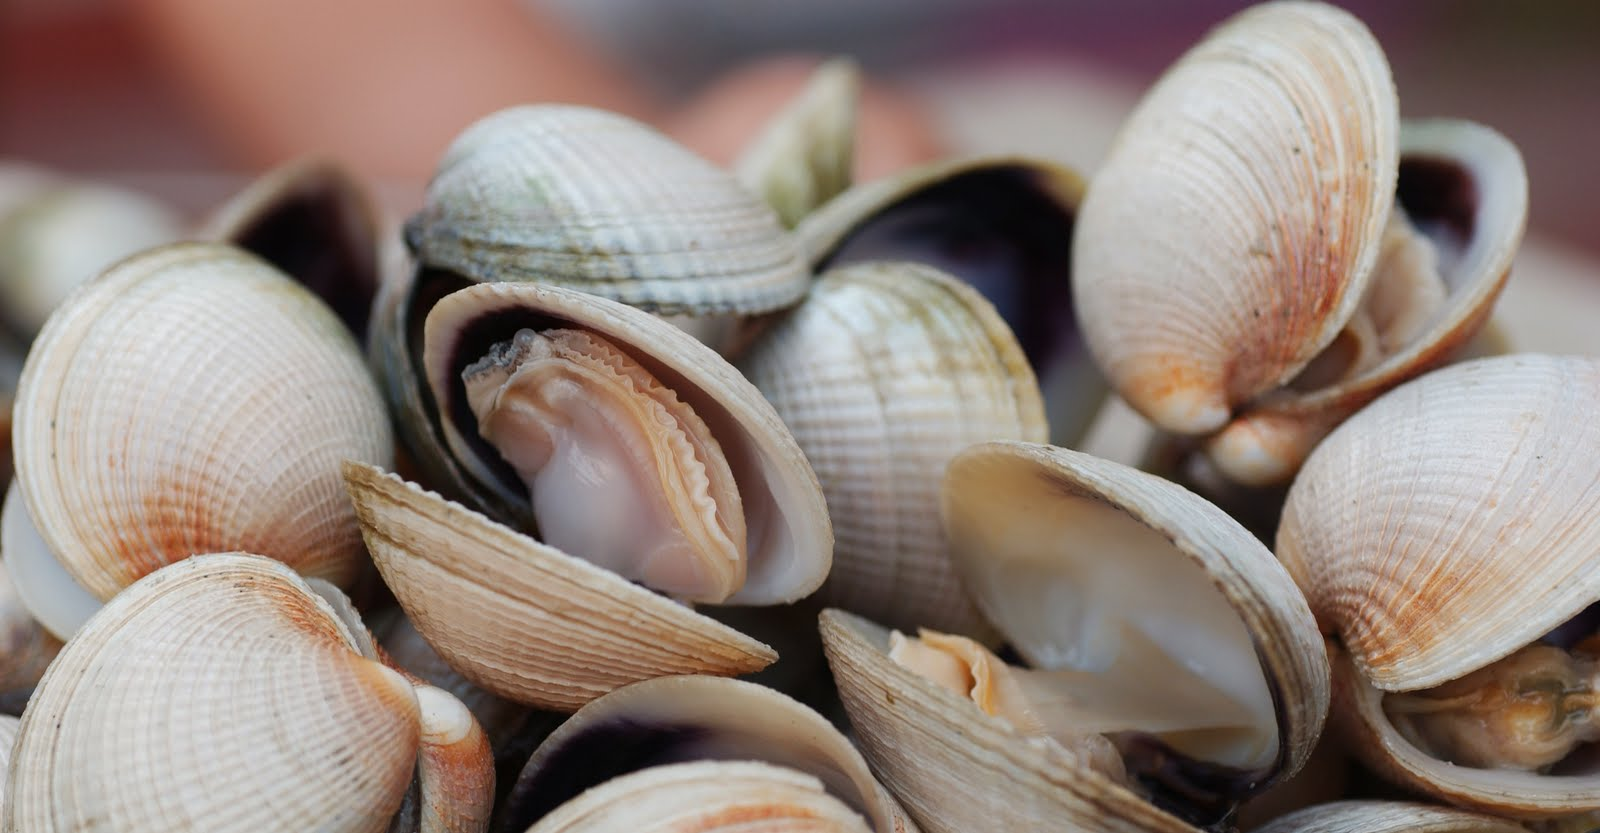 When you cook clams, you shouldn't eat the ones that don't open.